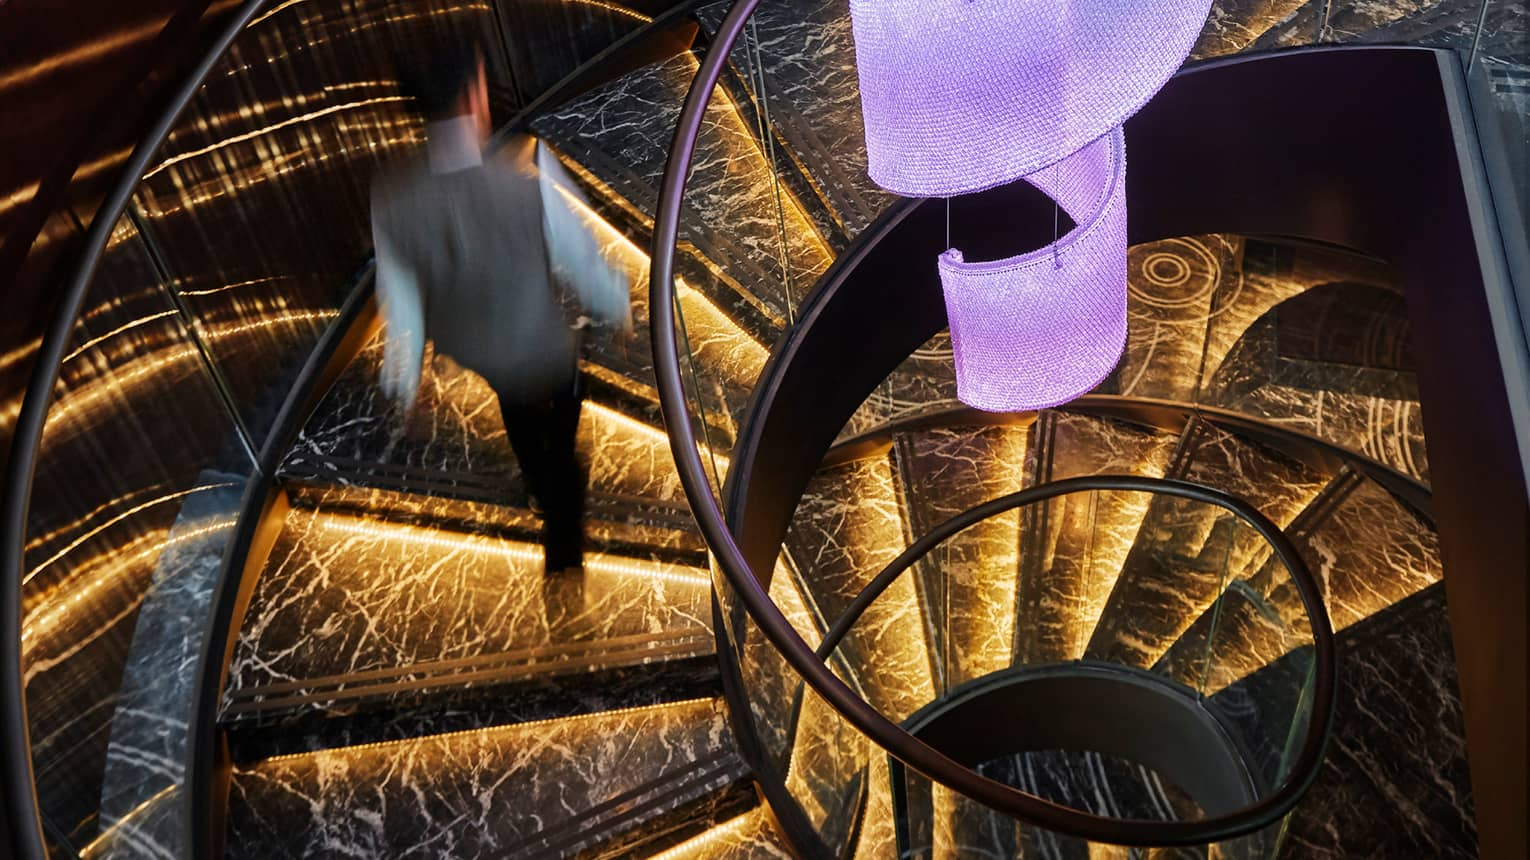 Server in uniform walks up black marble spiral staircase with orange lights